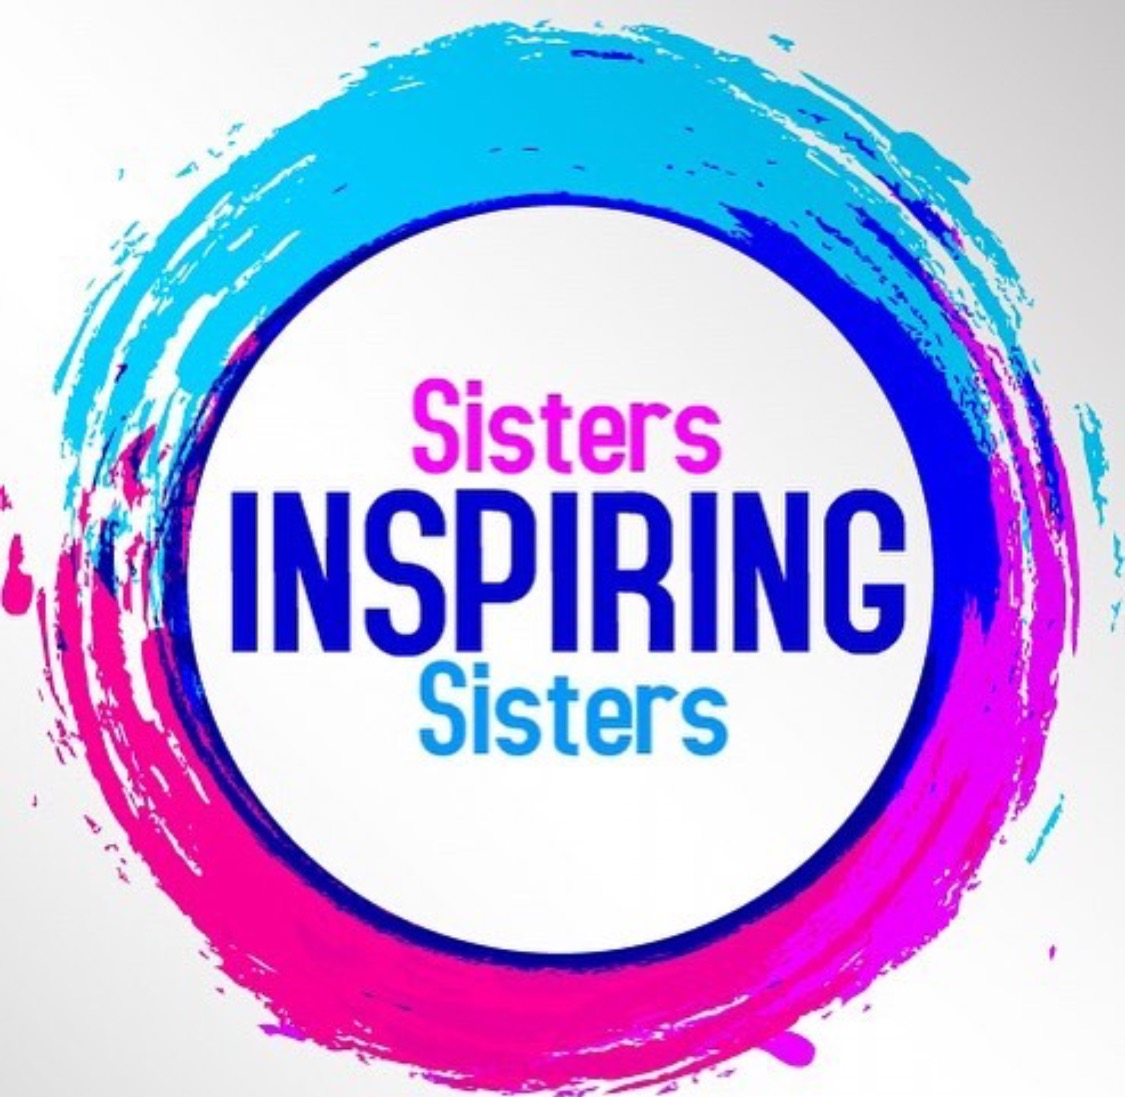 If you are looking for something to do tomorrow night, Sisters Inspiring Sisters' Dance for a Cause is a great way to showcase your altruistic side while also dancing the night away. (Photo courtesy of writer)